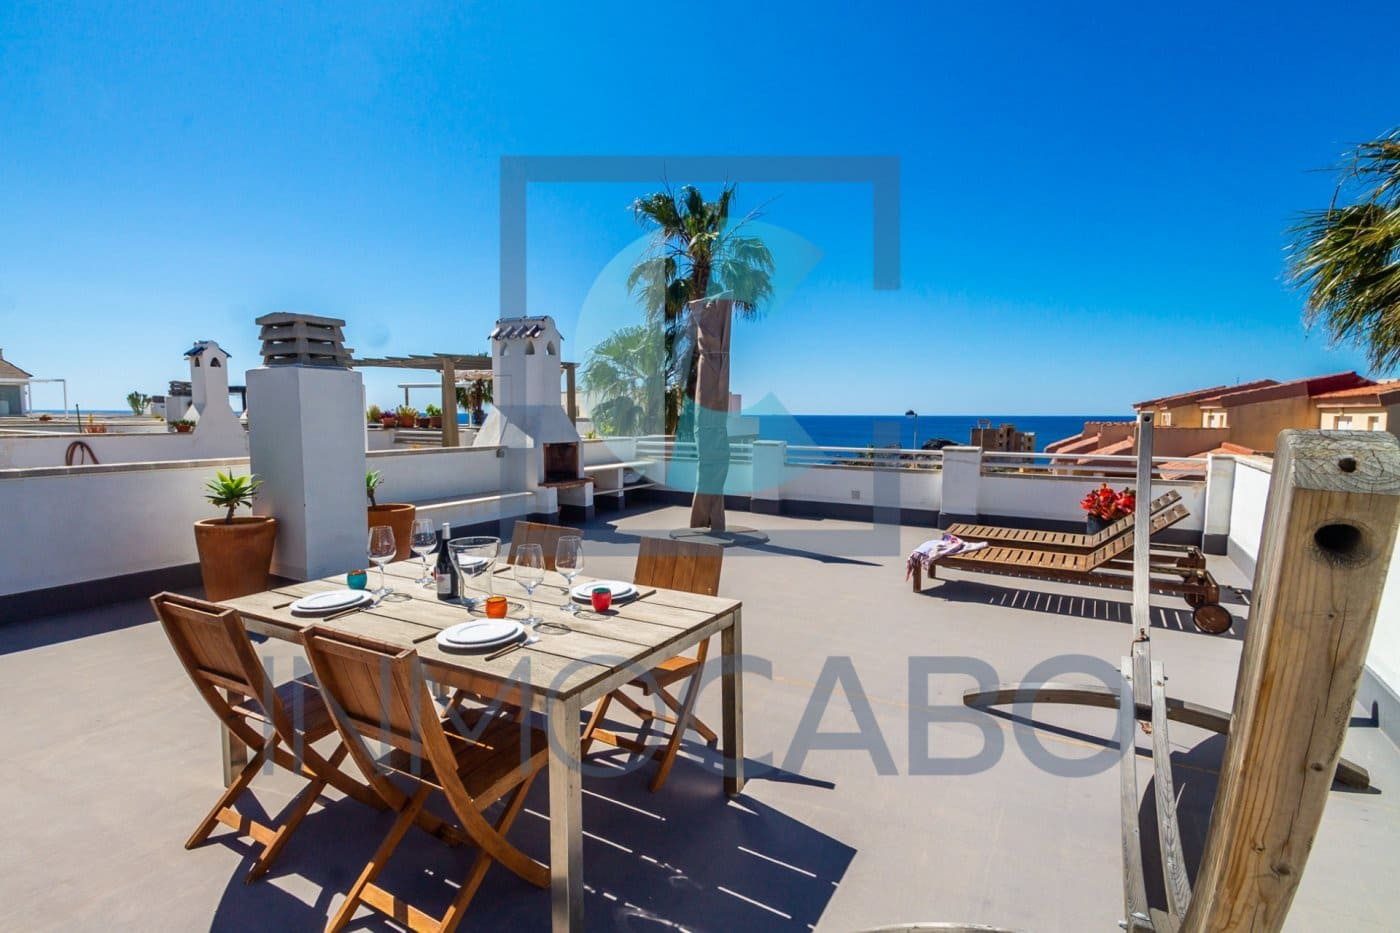 3 bedroom Apartment for sale in Cala Flores with pool garage - € 350,000 (Ref: 5247006)